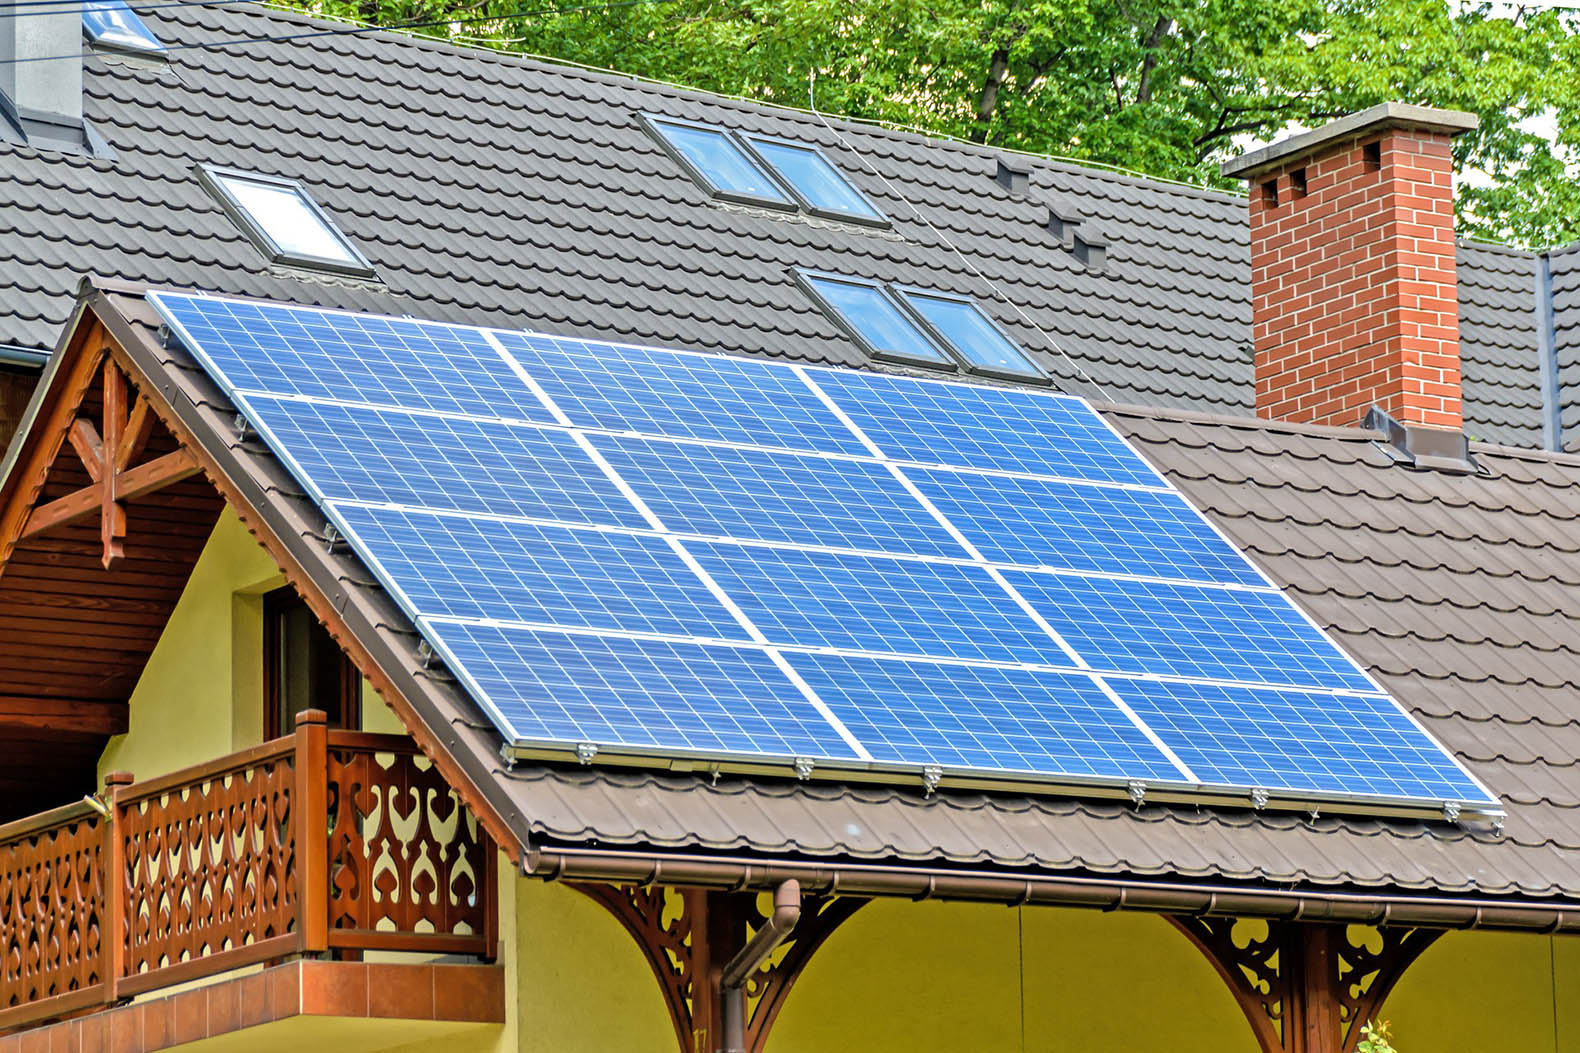 Labour Party launches solar panel program for 1.75M homes